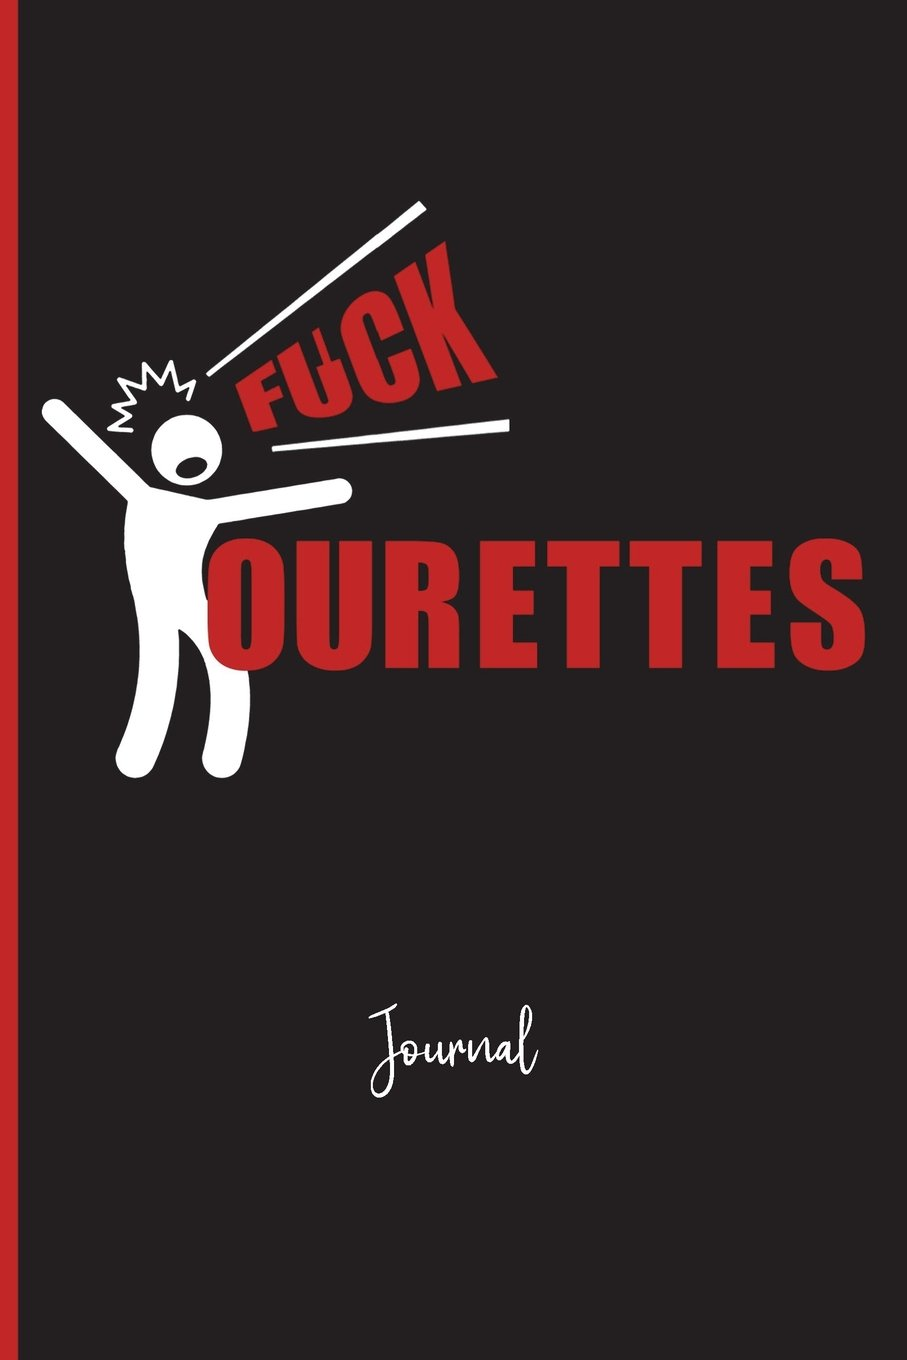 "Fuck Tourettes : Journal: A Personal Journal for Sounding Off : 110 Pages of Personal Writing Space : 6 x 9"" : Diary, Write, Doodle, Notes, Sketch Pad ... ADHD, OCD, Coprolalia, Tourettes Syndrome pdf"